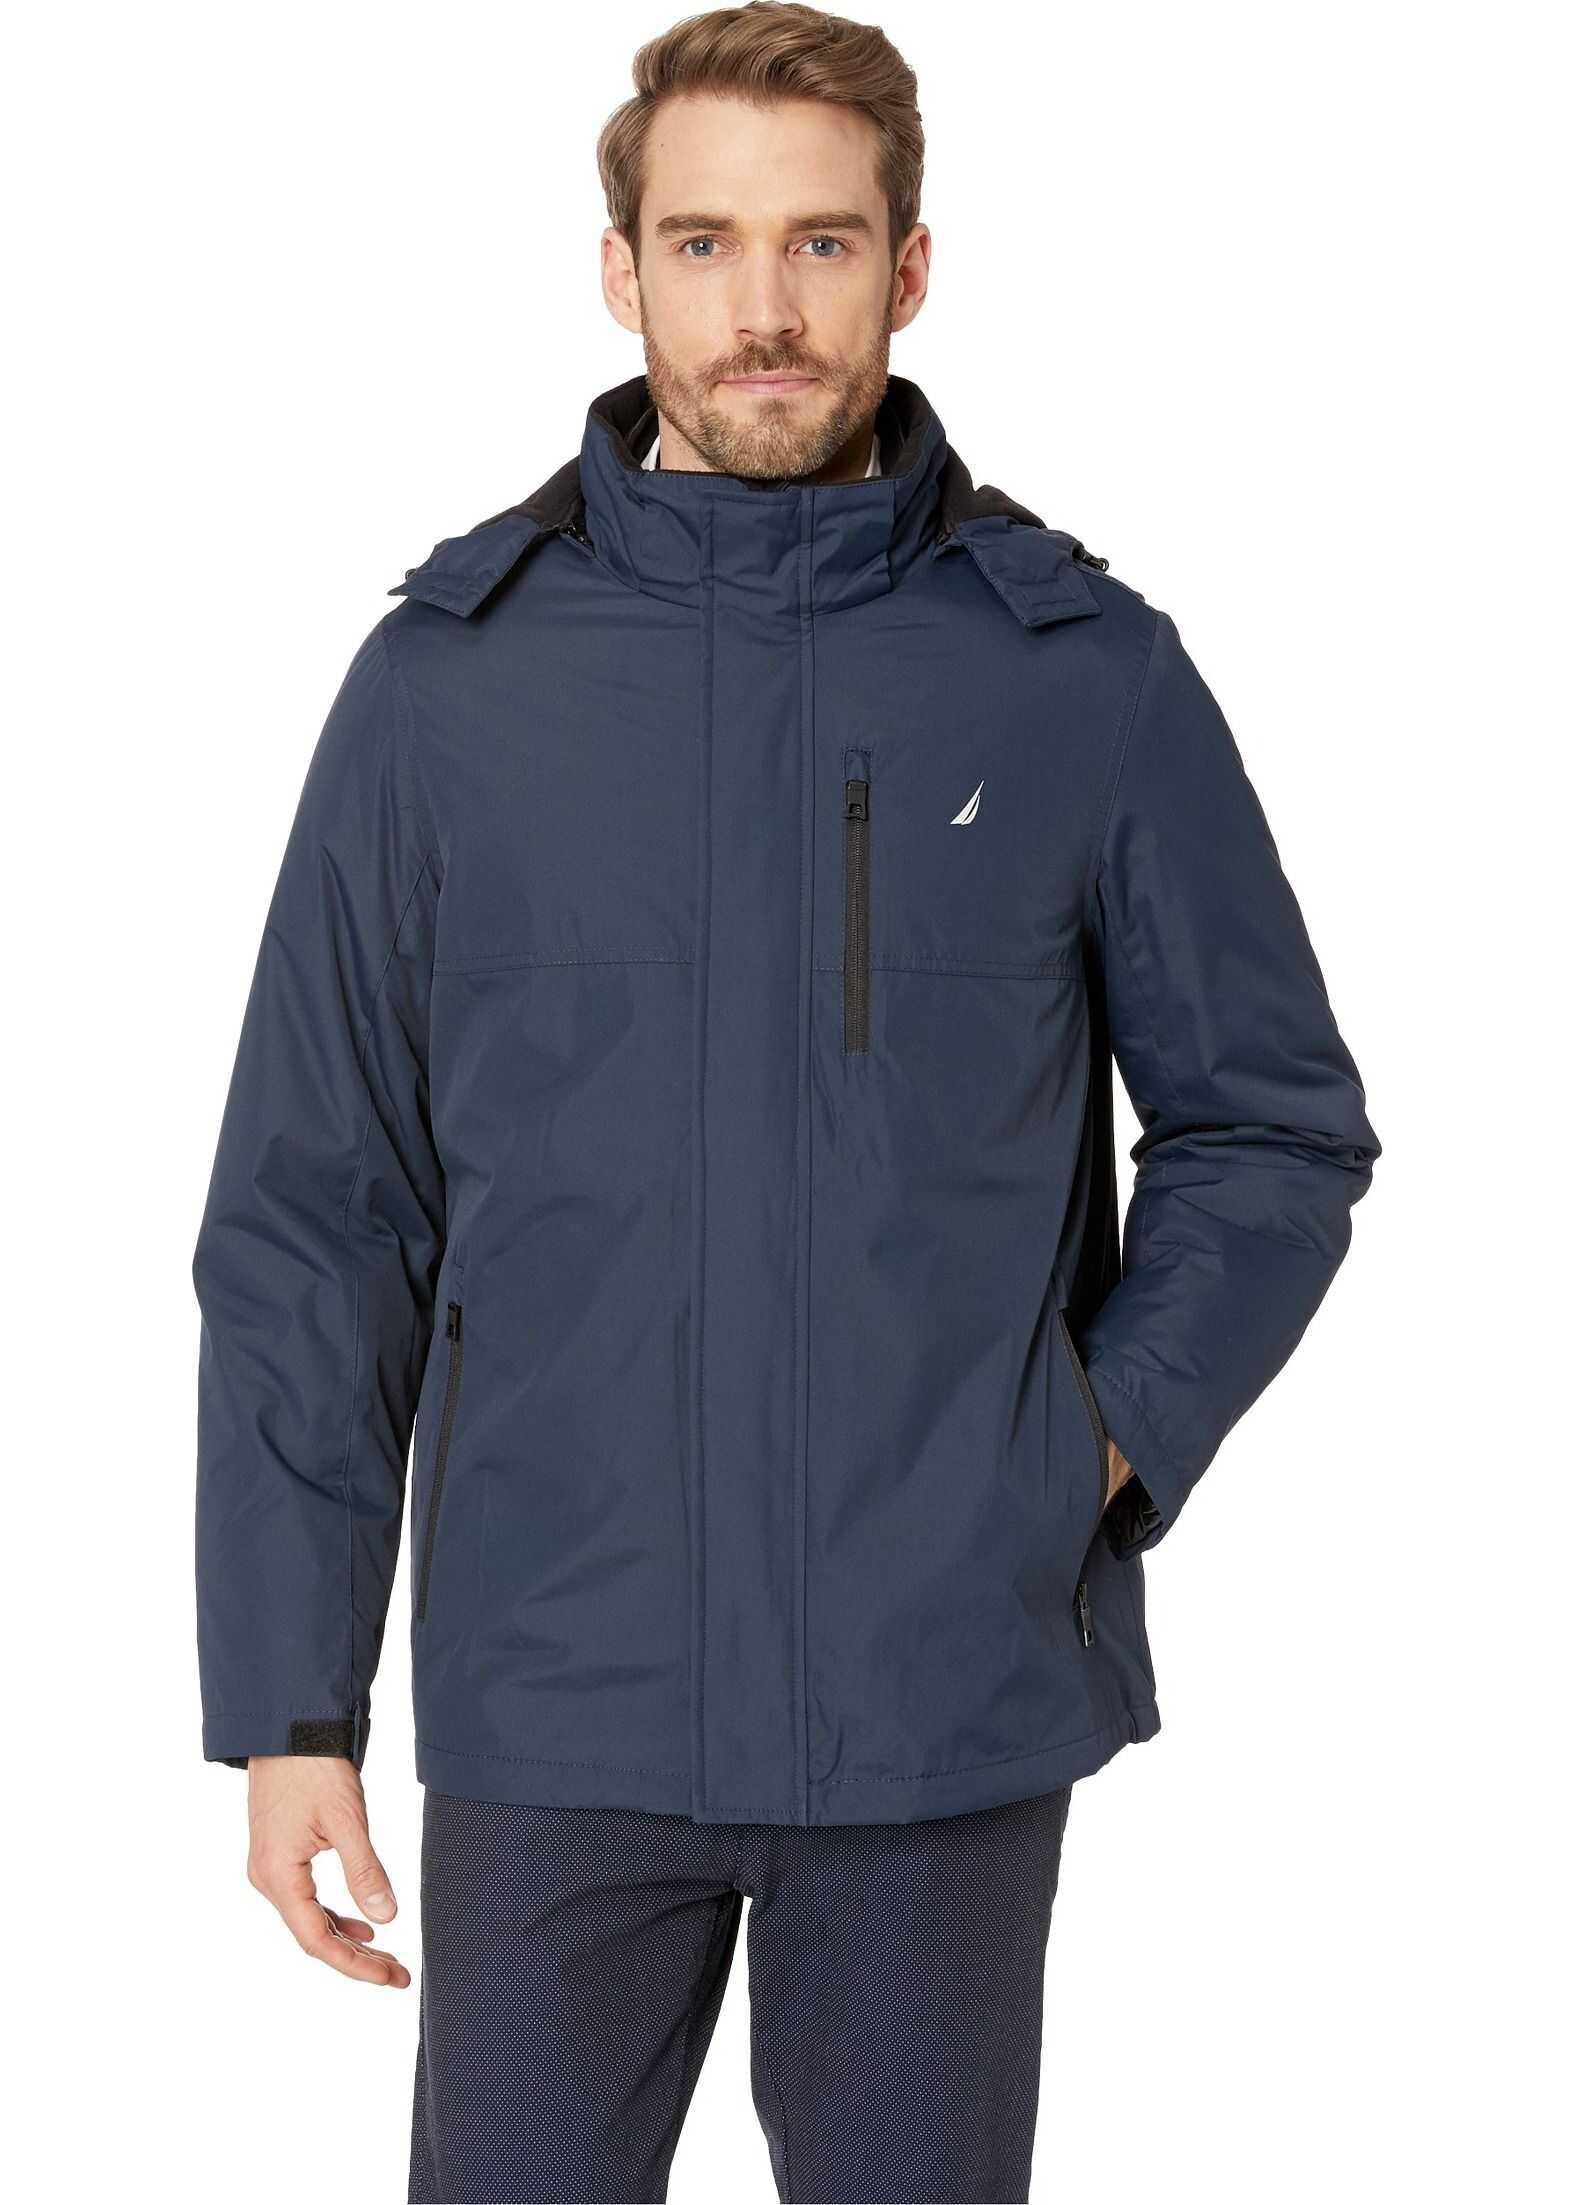 Nautica Systems 3-in-1 Jacket Navy